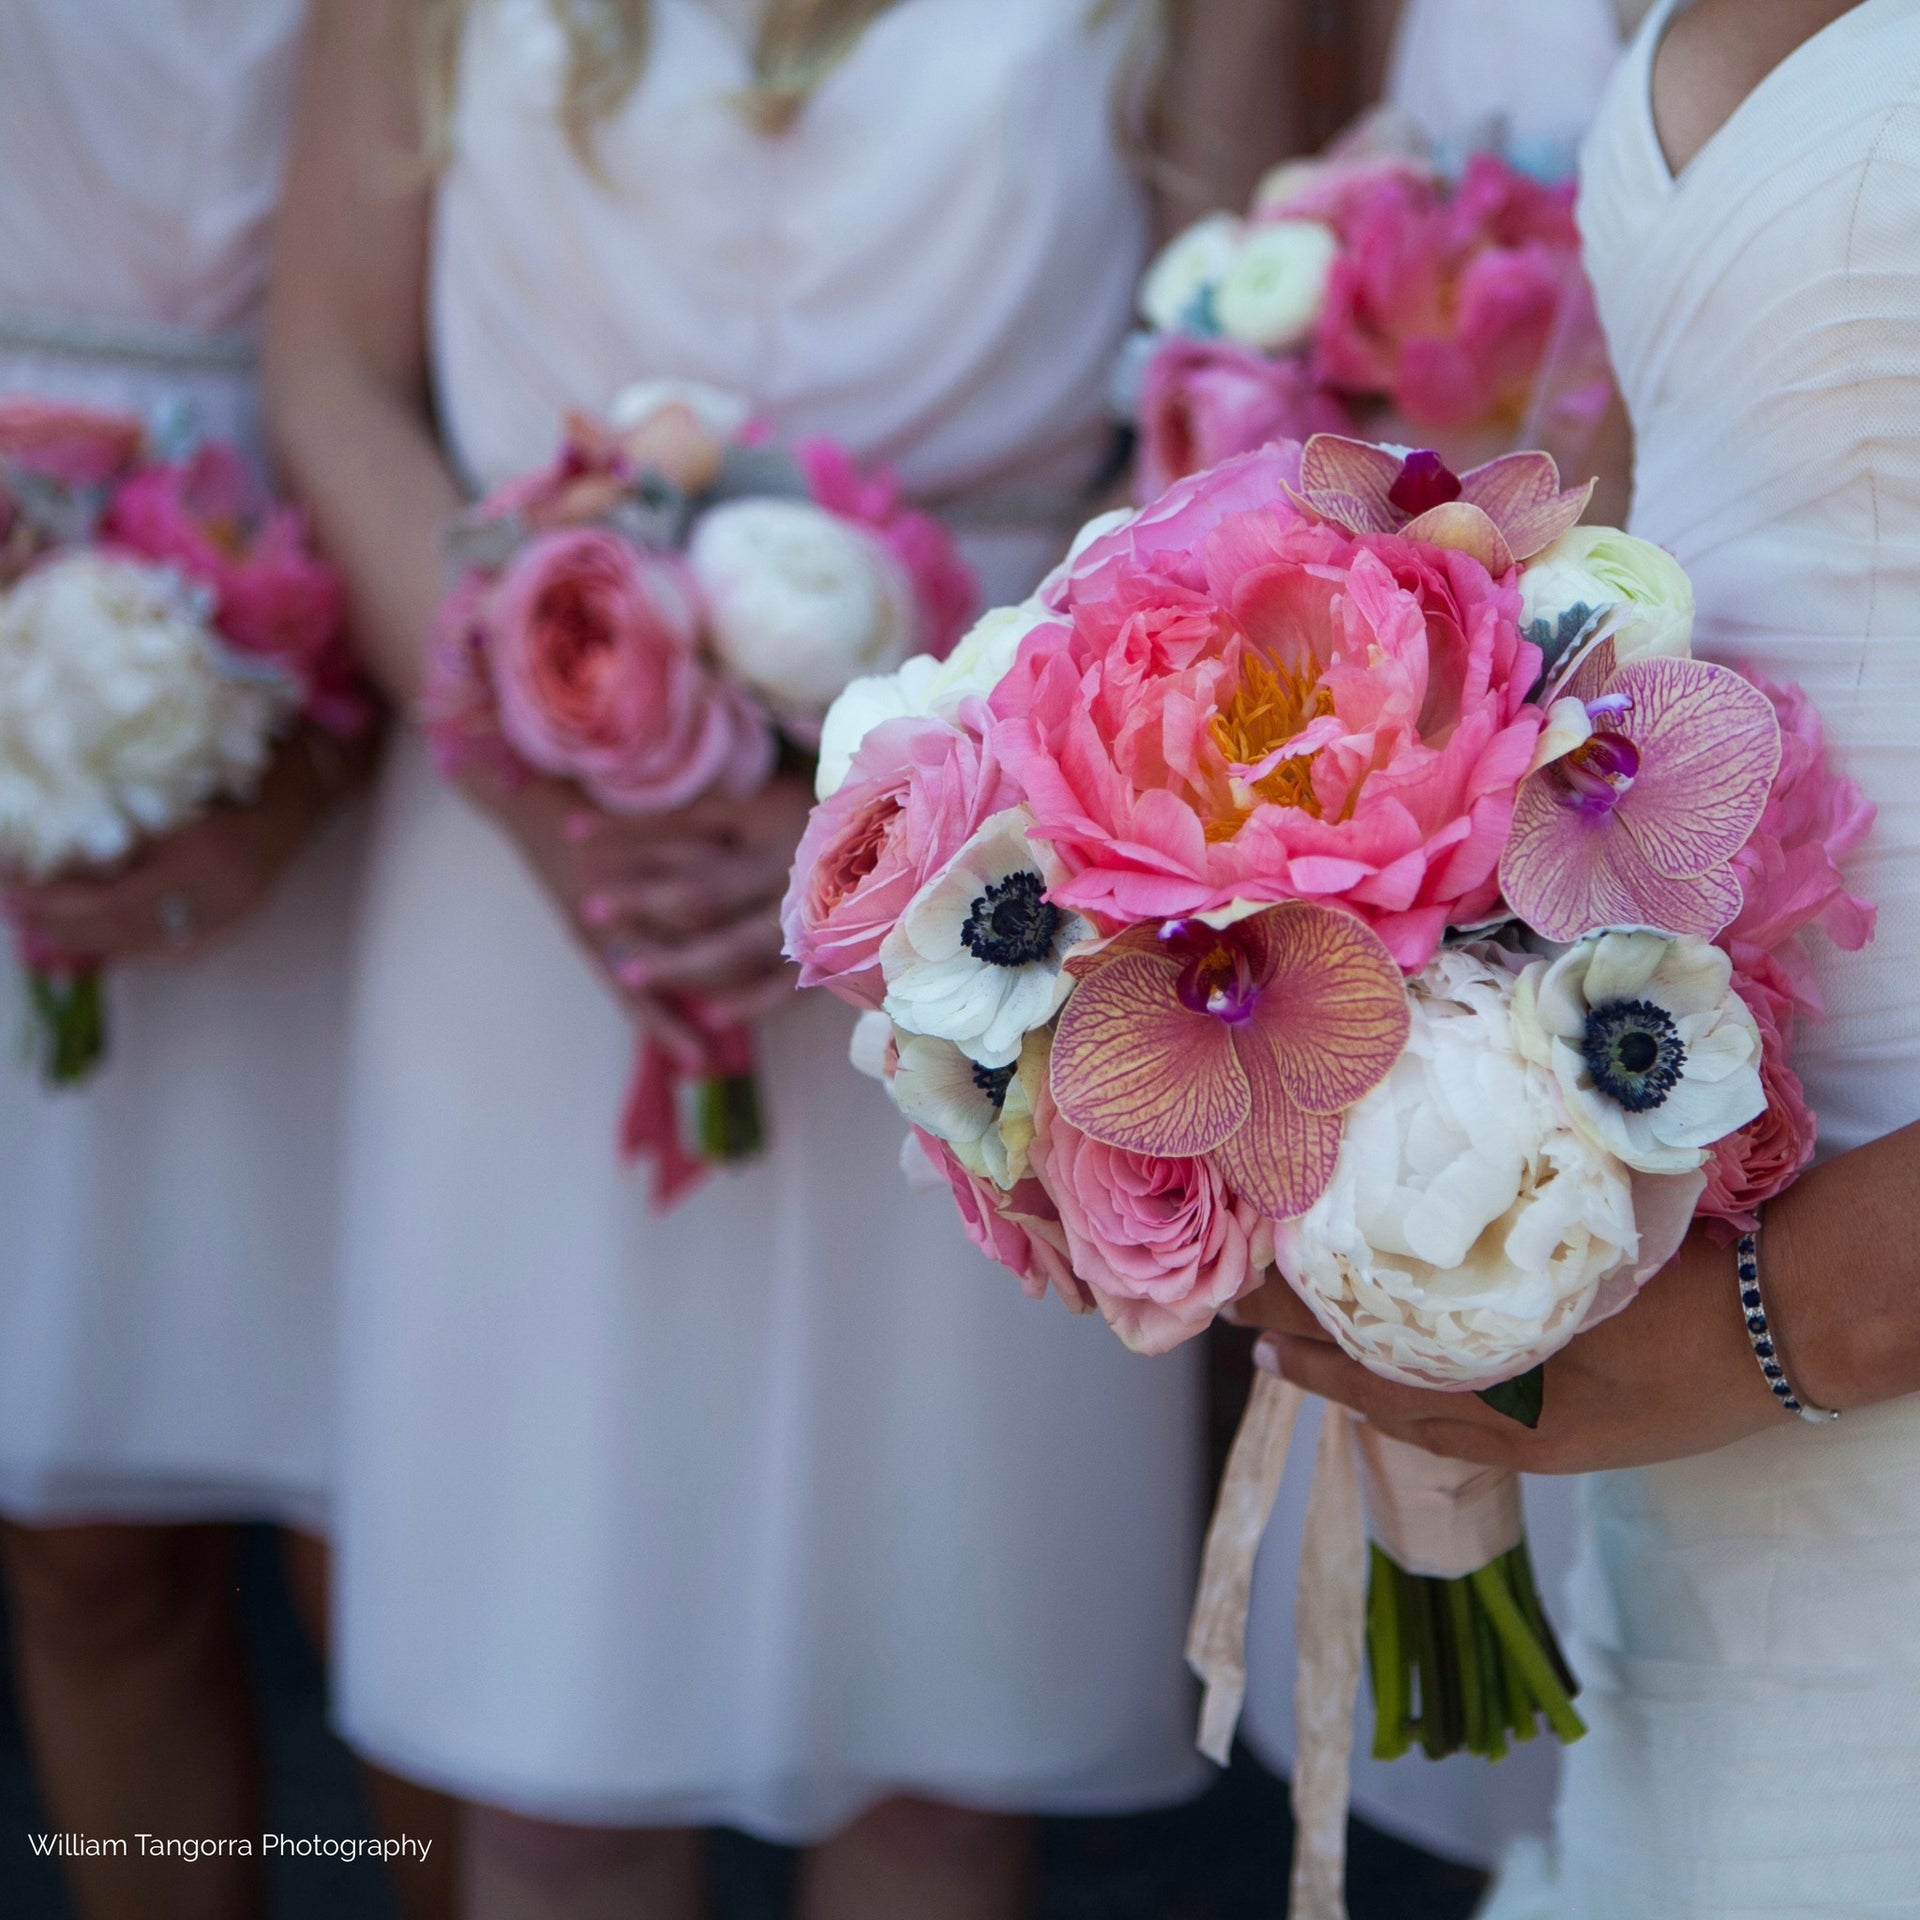 Bridesmaid's bouquet with coral peonies, anemones, and orchids.